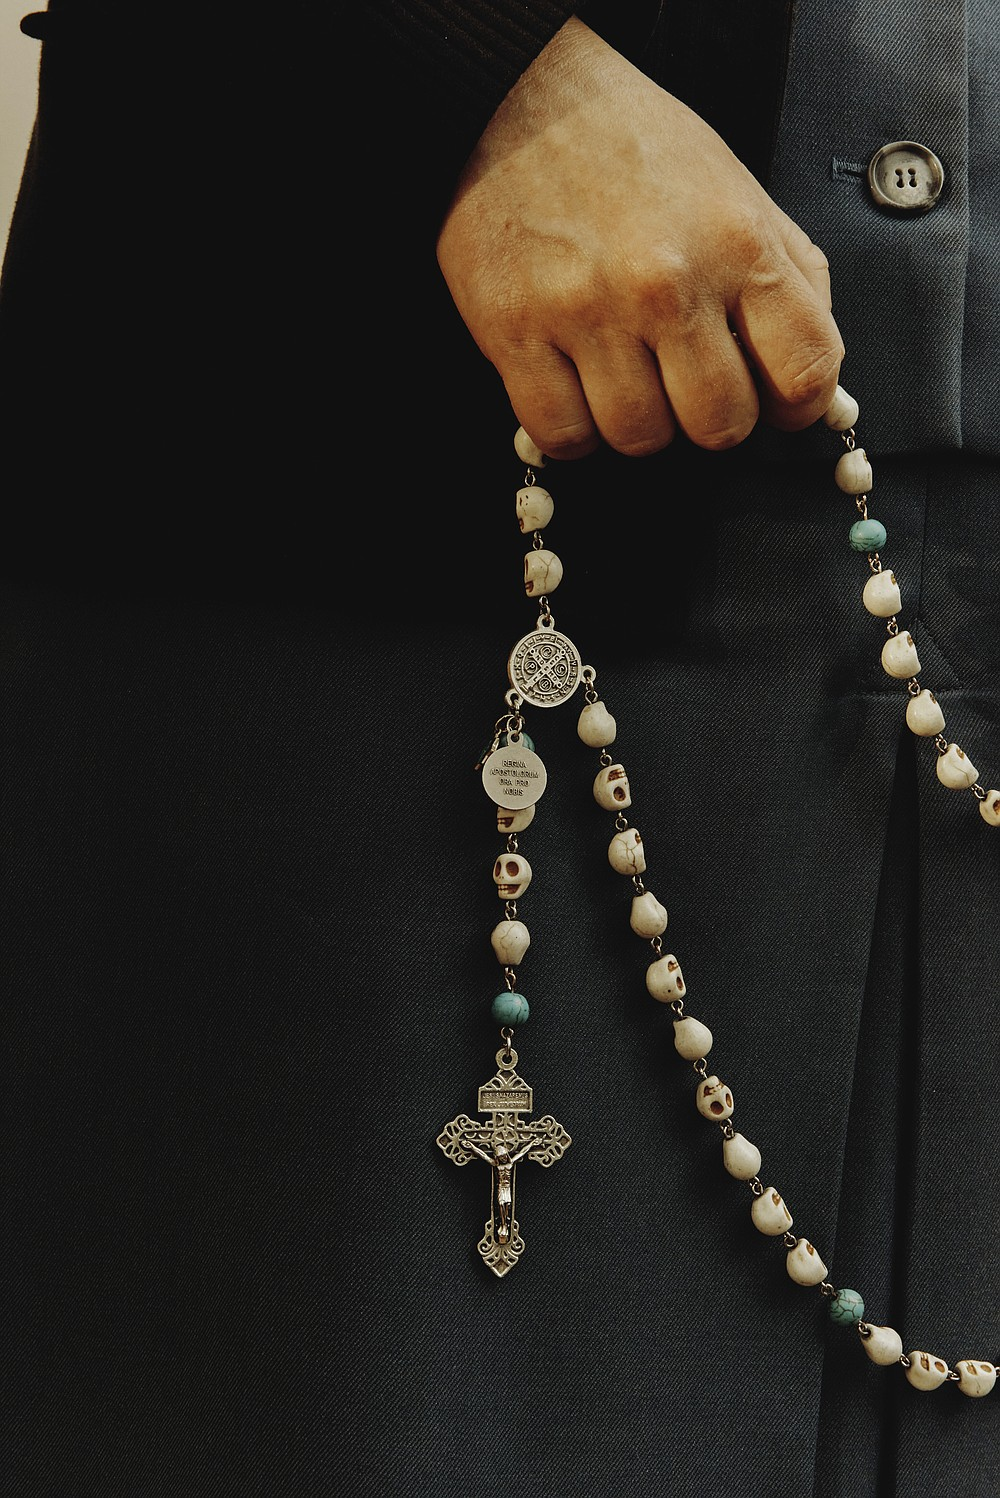 """Sister Theresa Aletheia Noble holds a rosary with skull beads at Daughters of St. Paul convent in Boston. Since 2017, Sister Aletheia has made it her mission to revive the practice of memento mori, a Latin phrase meaning """"Remember your death,"""" which encourages intentional thought about one's death every day as a means of appreciating the present and focusing on the future. (The New York Times/Tony Luong)"""